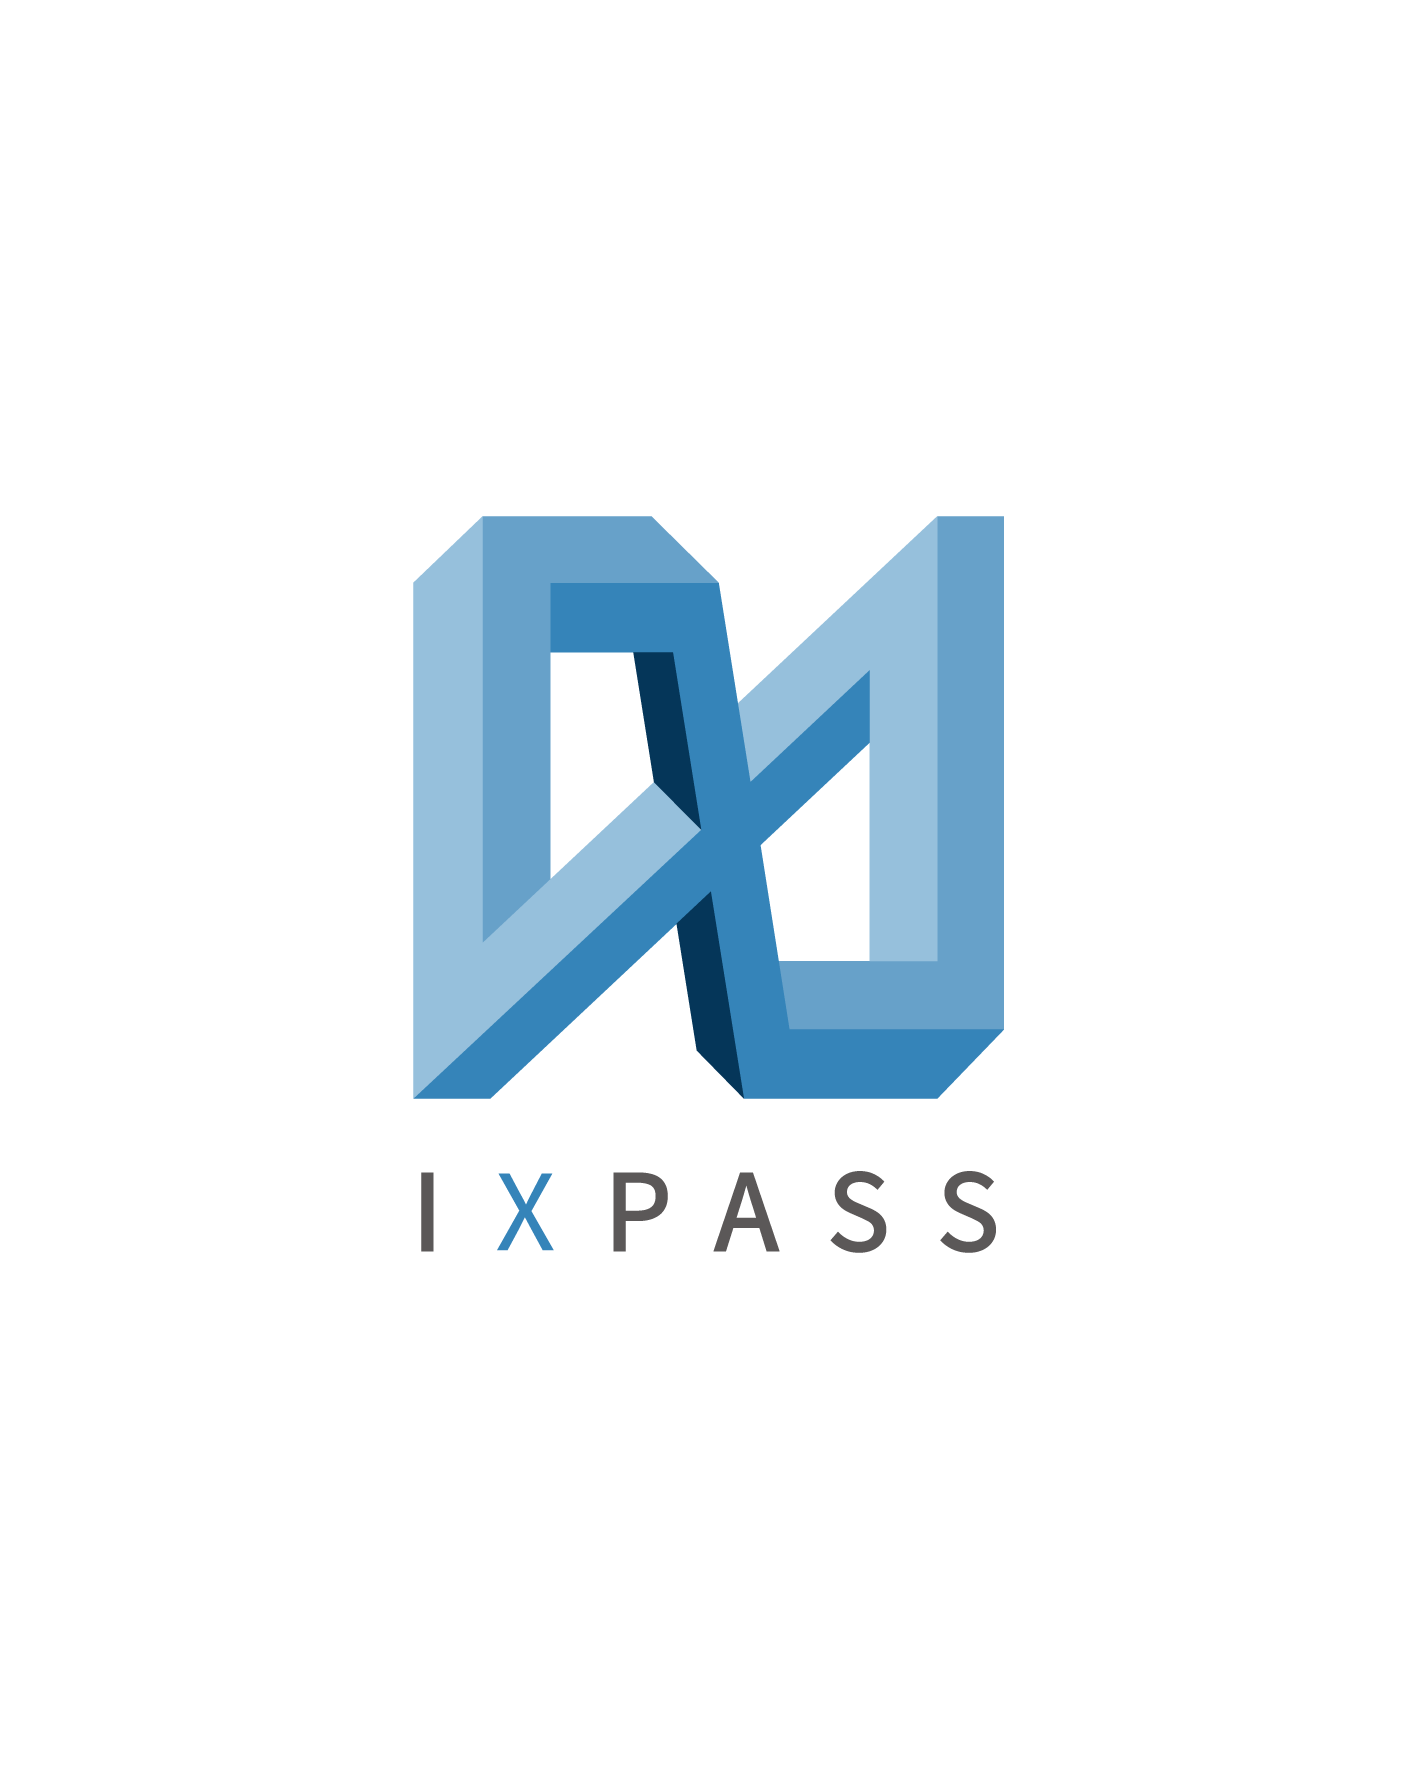 Ixpass logo all 01